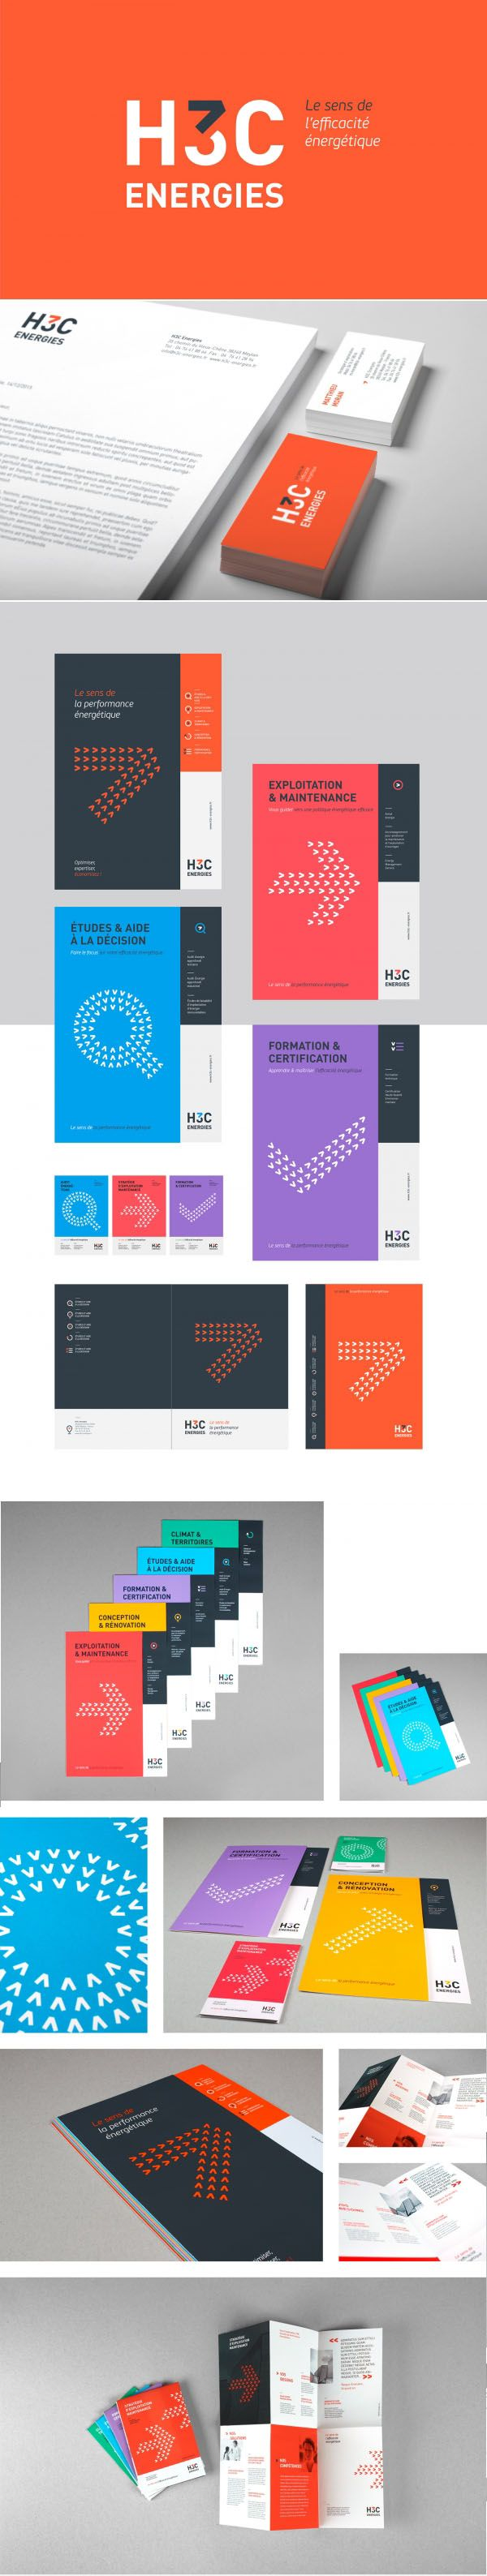 H3C Energies - Brand Design by Graphéine